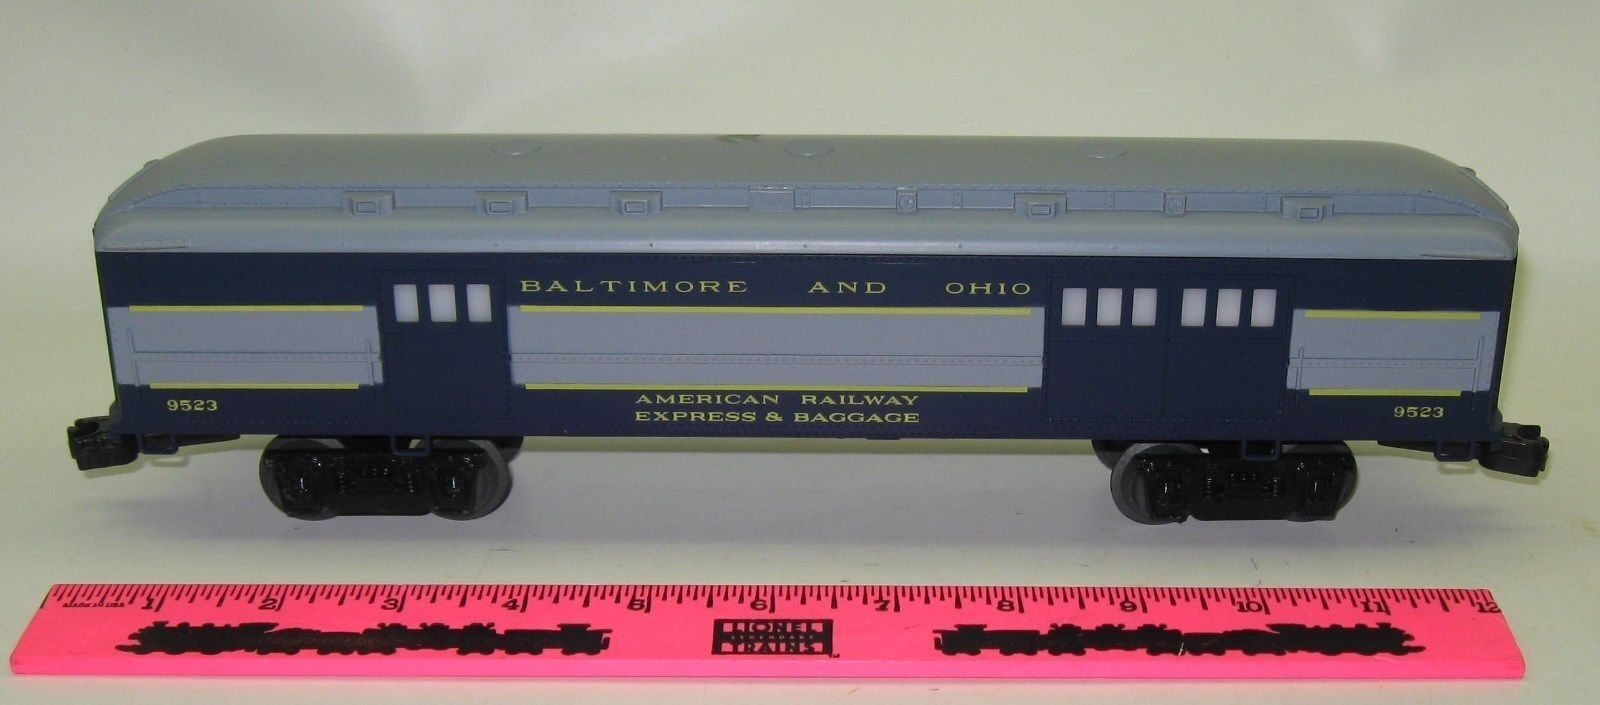 Lionel 9523 Baltimore and Ohio  American Railway express & baggage  Baggage Pass